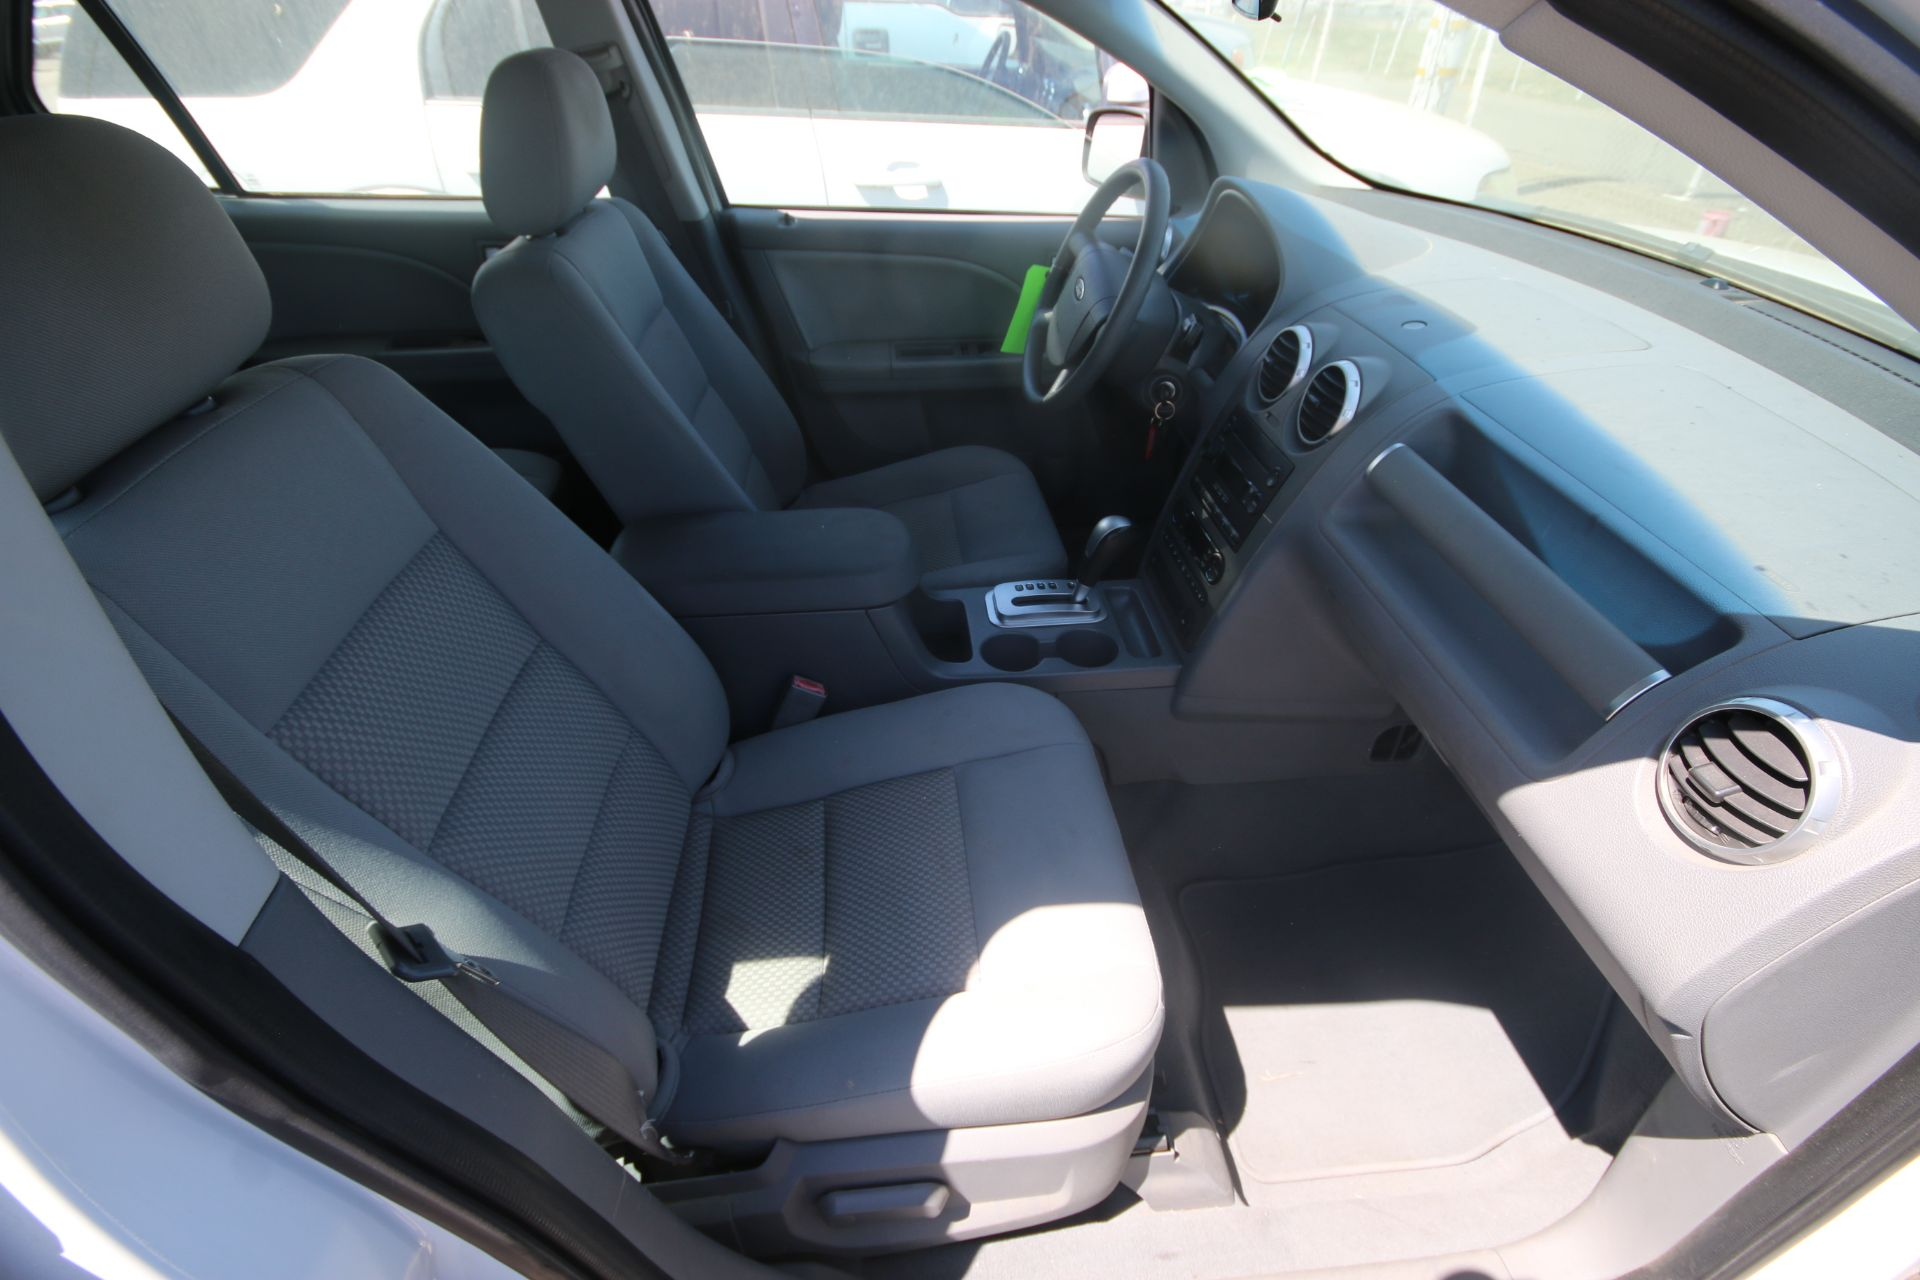 2006 Ford Freestyle, VIN #: 1FMDKO11X6GA41766, with 108,982 Miles, License Plate #: 5NGZ608, Started - Image 11 of 22